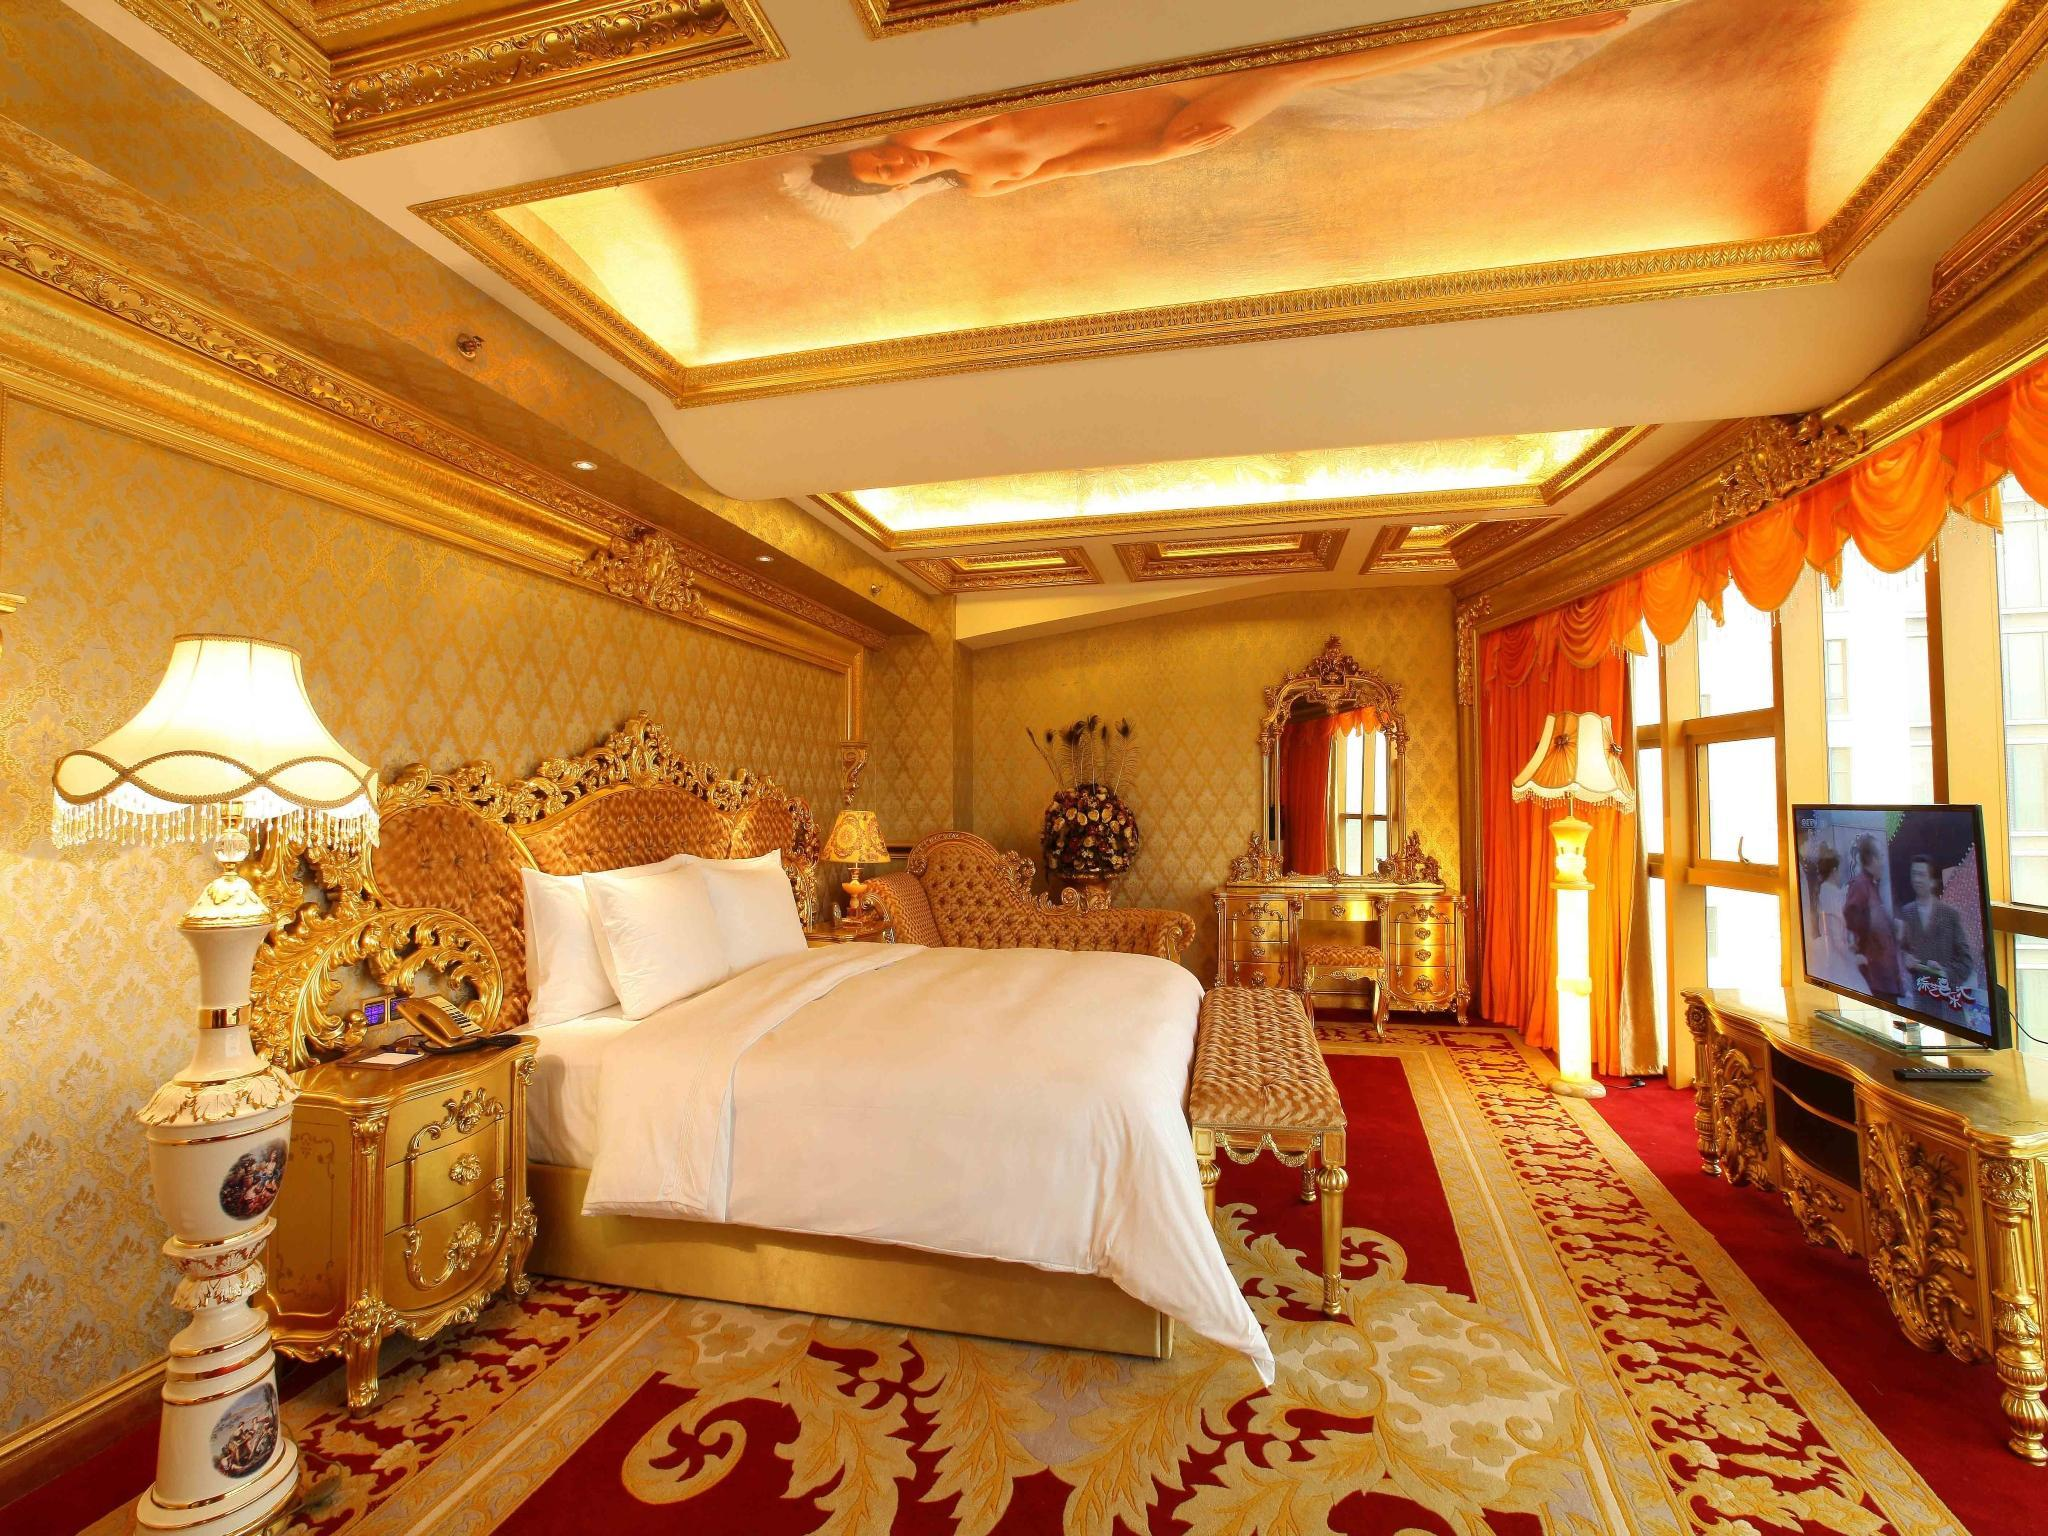 Best price on nanning dibai 7 star hotel in nanning reviews for 7 star hotel